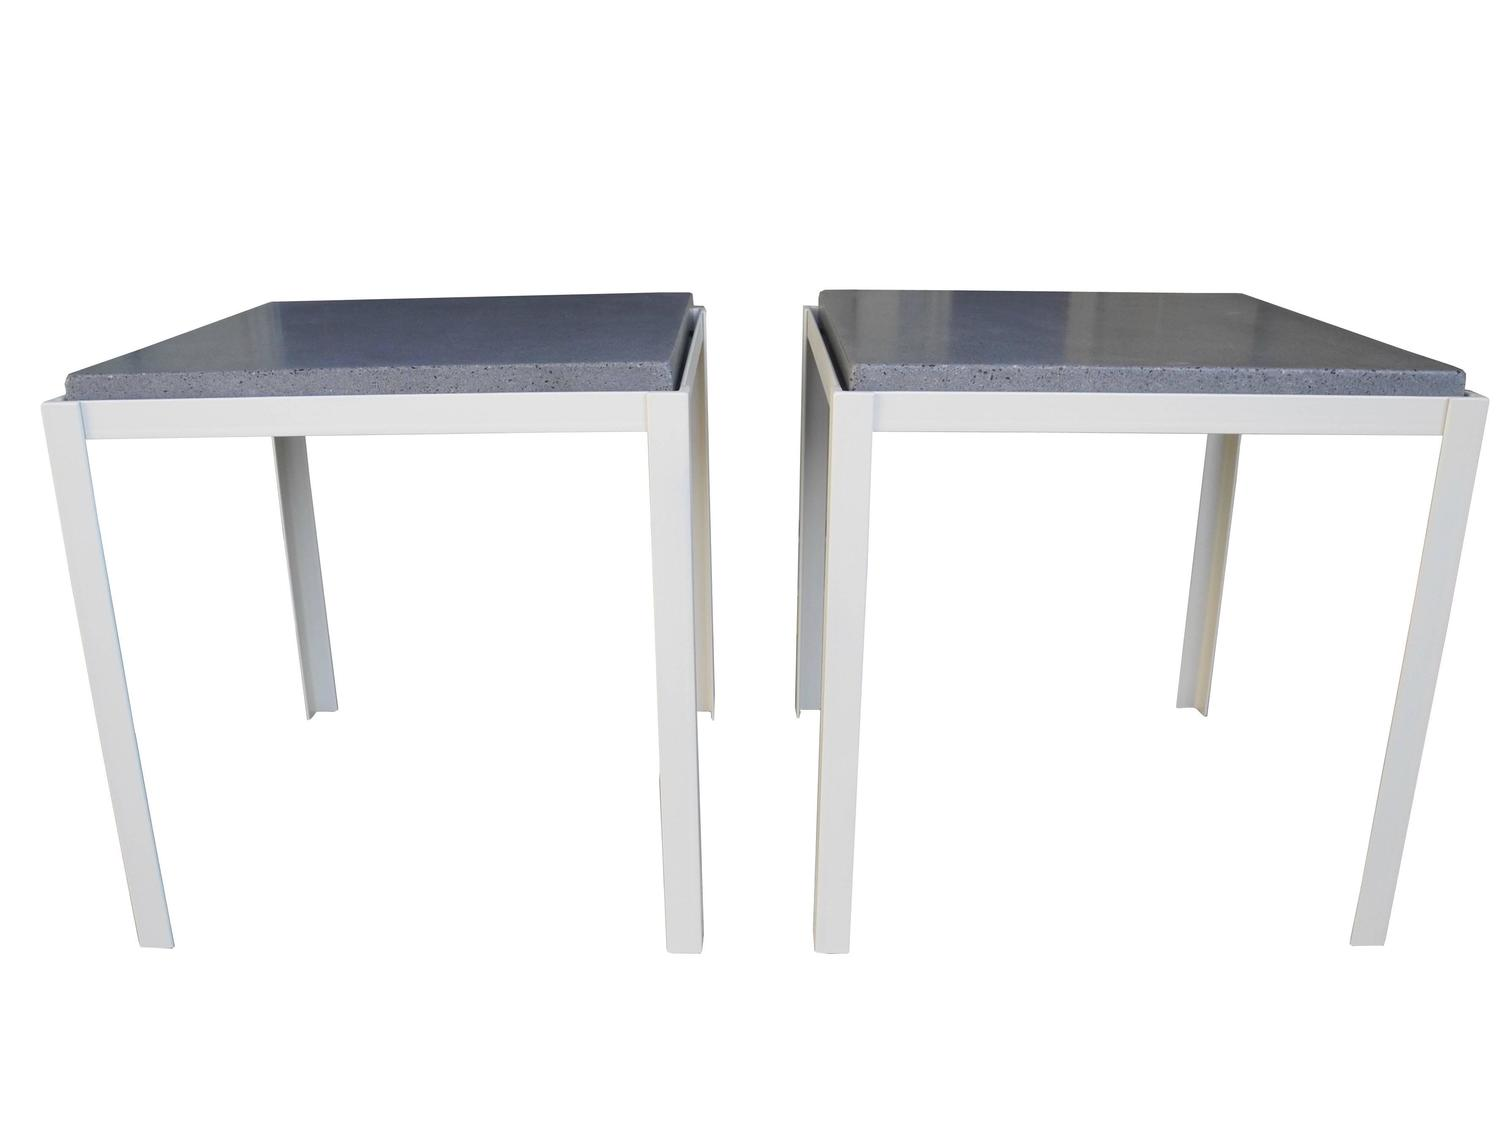 Polished Concrete And Welded Steel Night Stands Coffee Tables Corinne Robbins For Sale At 1stdibs